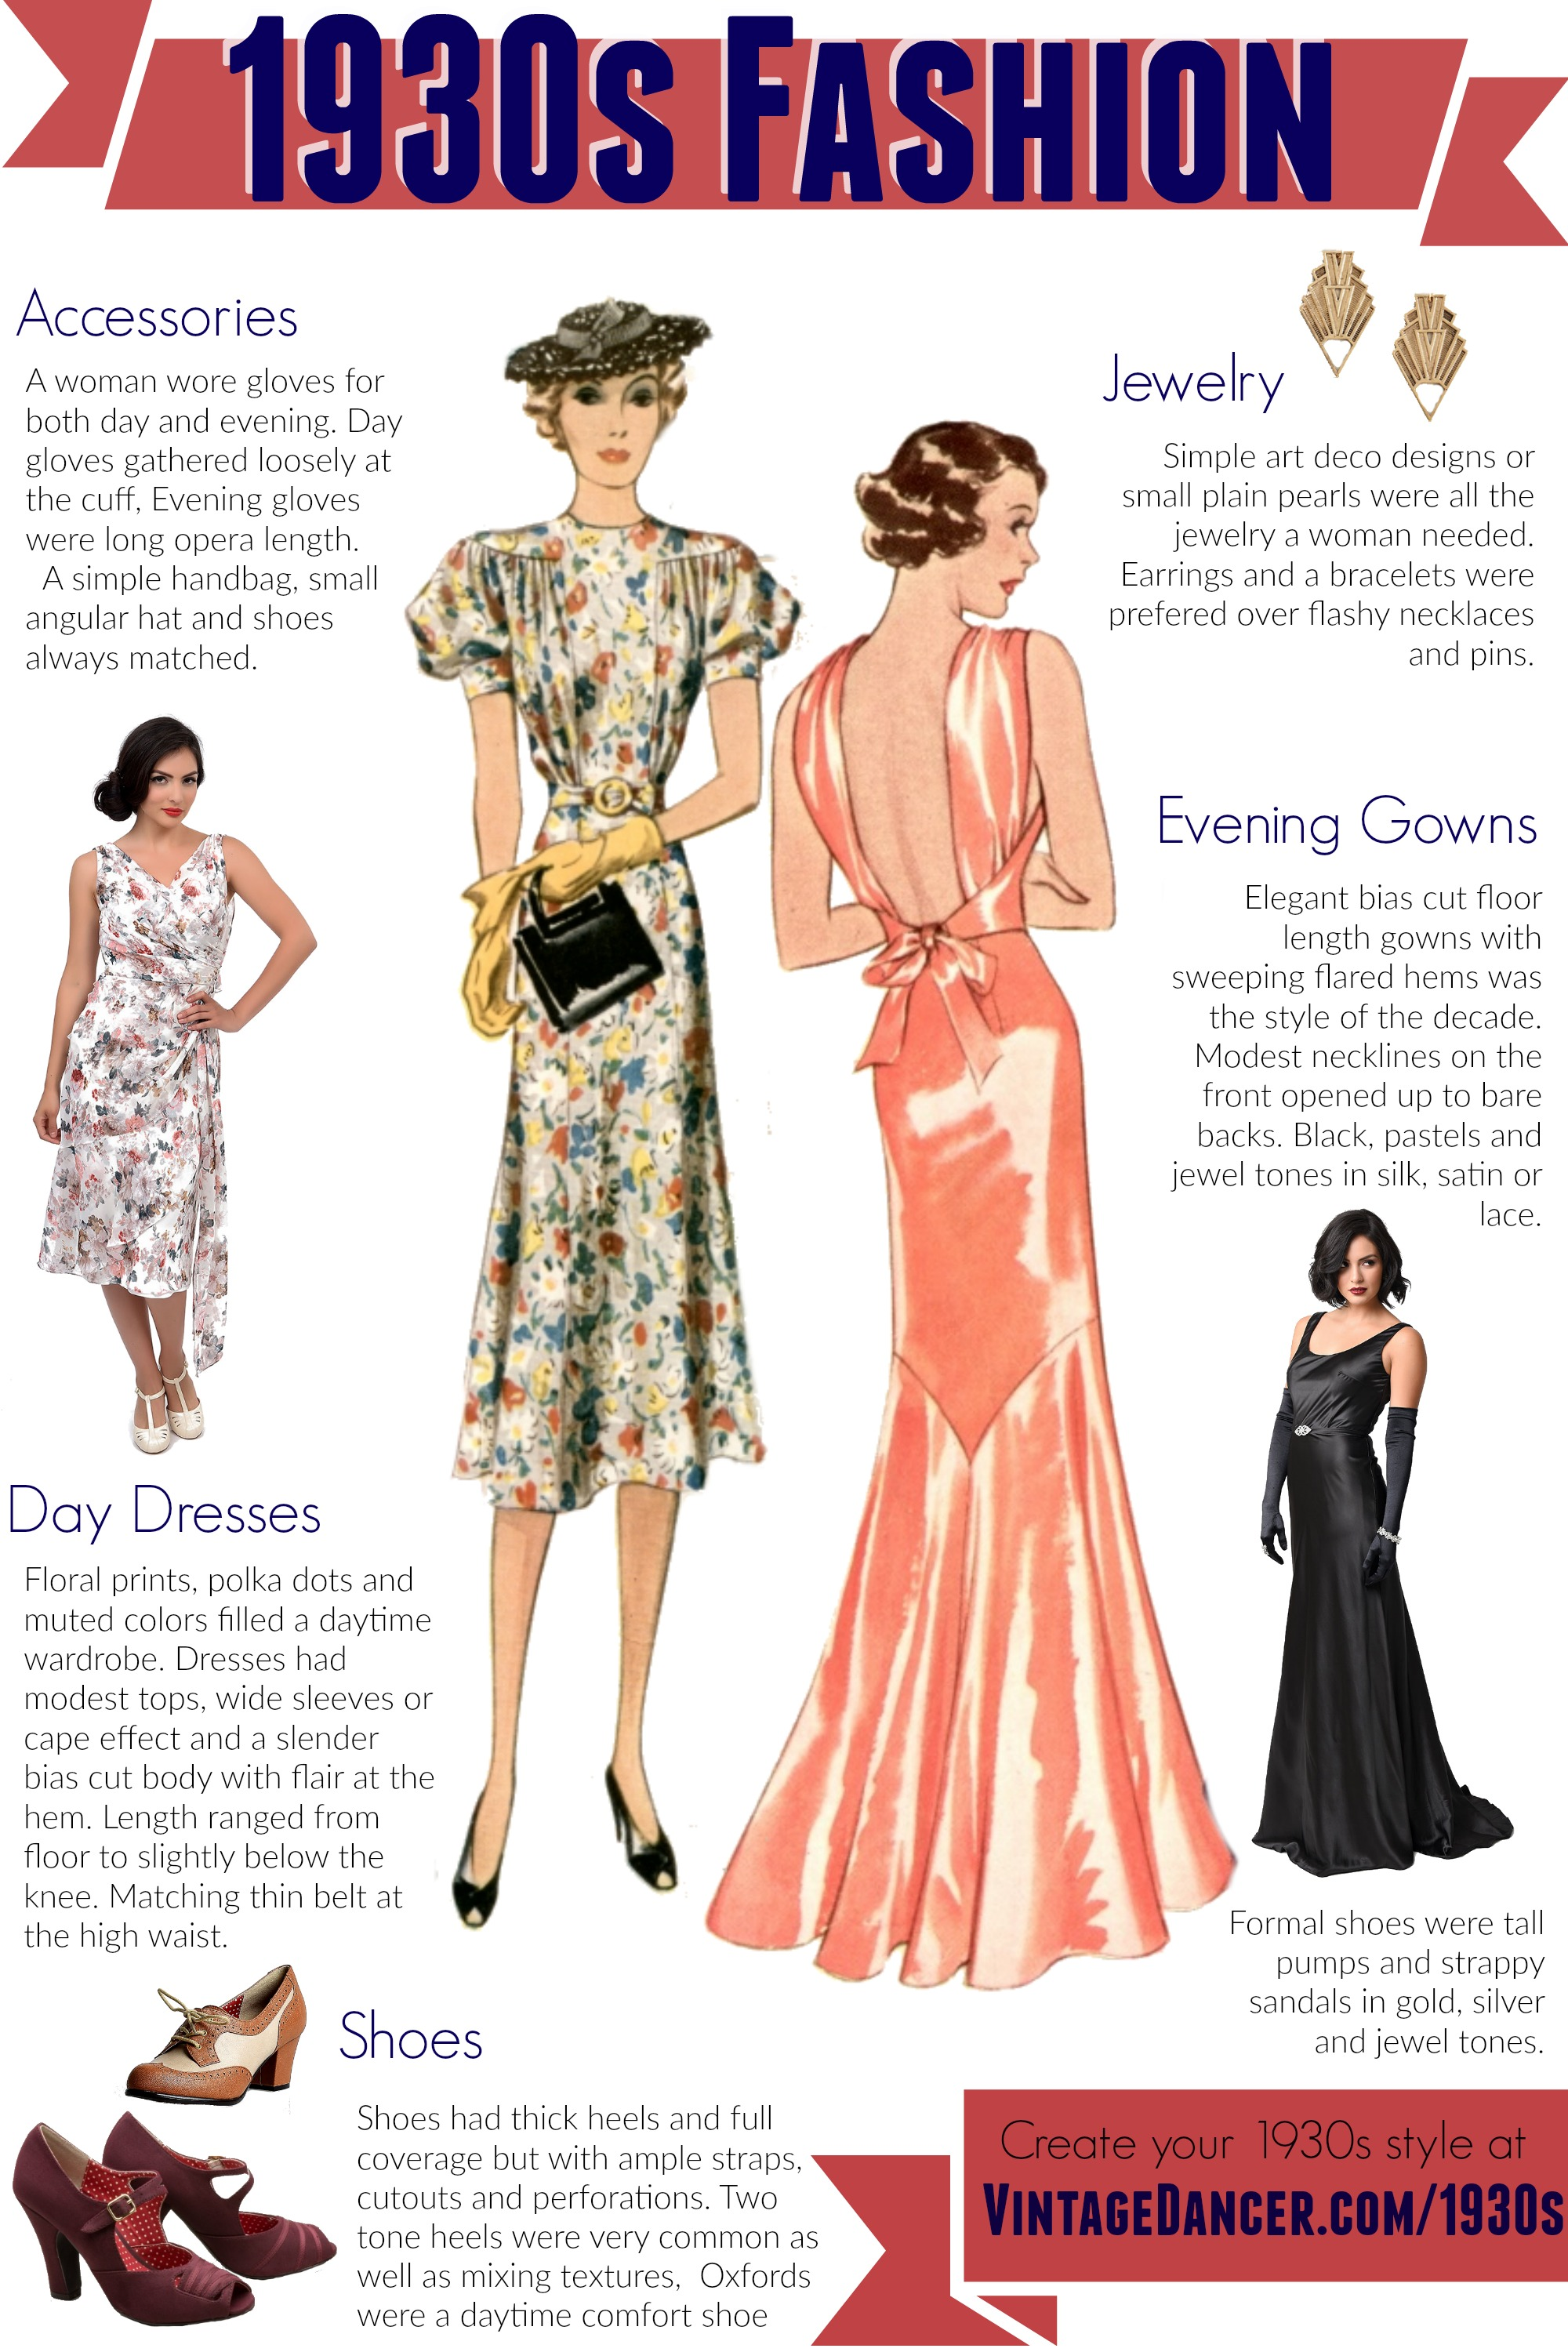 Rcbzrcbz: Plus Length Attire 1930s